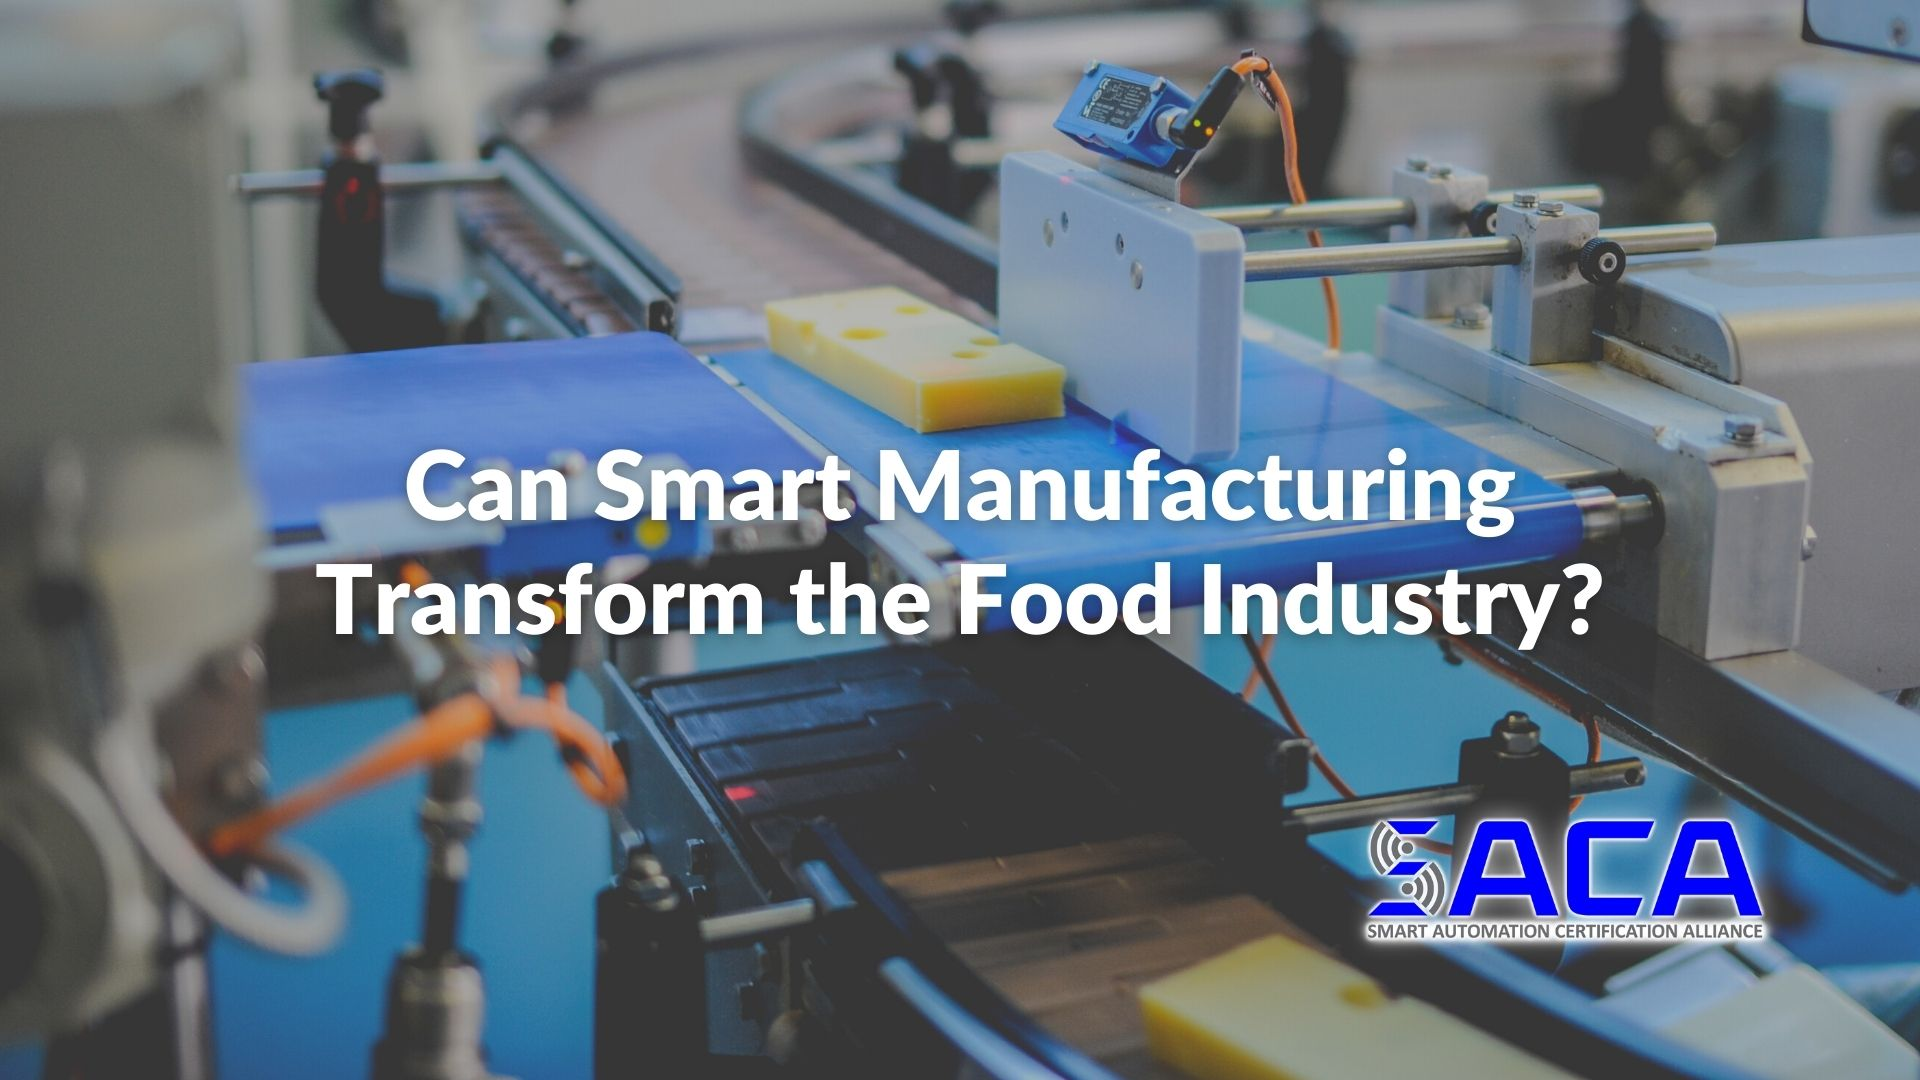 Can Smart Manufacturing Transform the Food Industry?